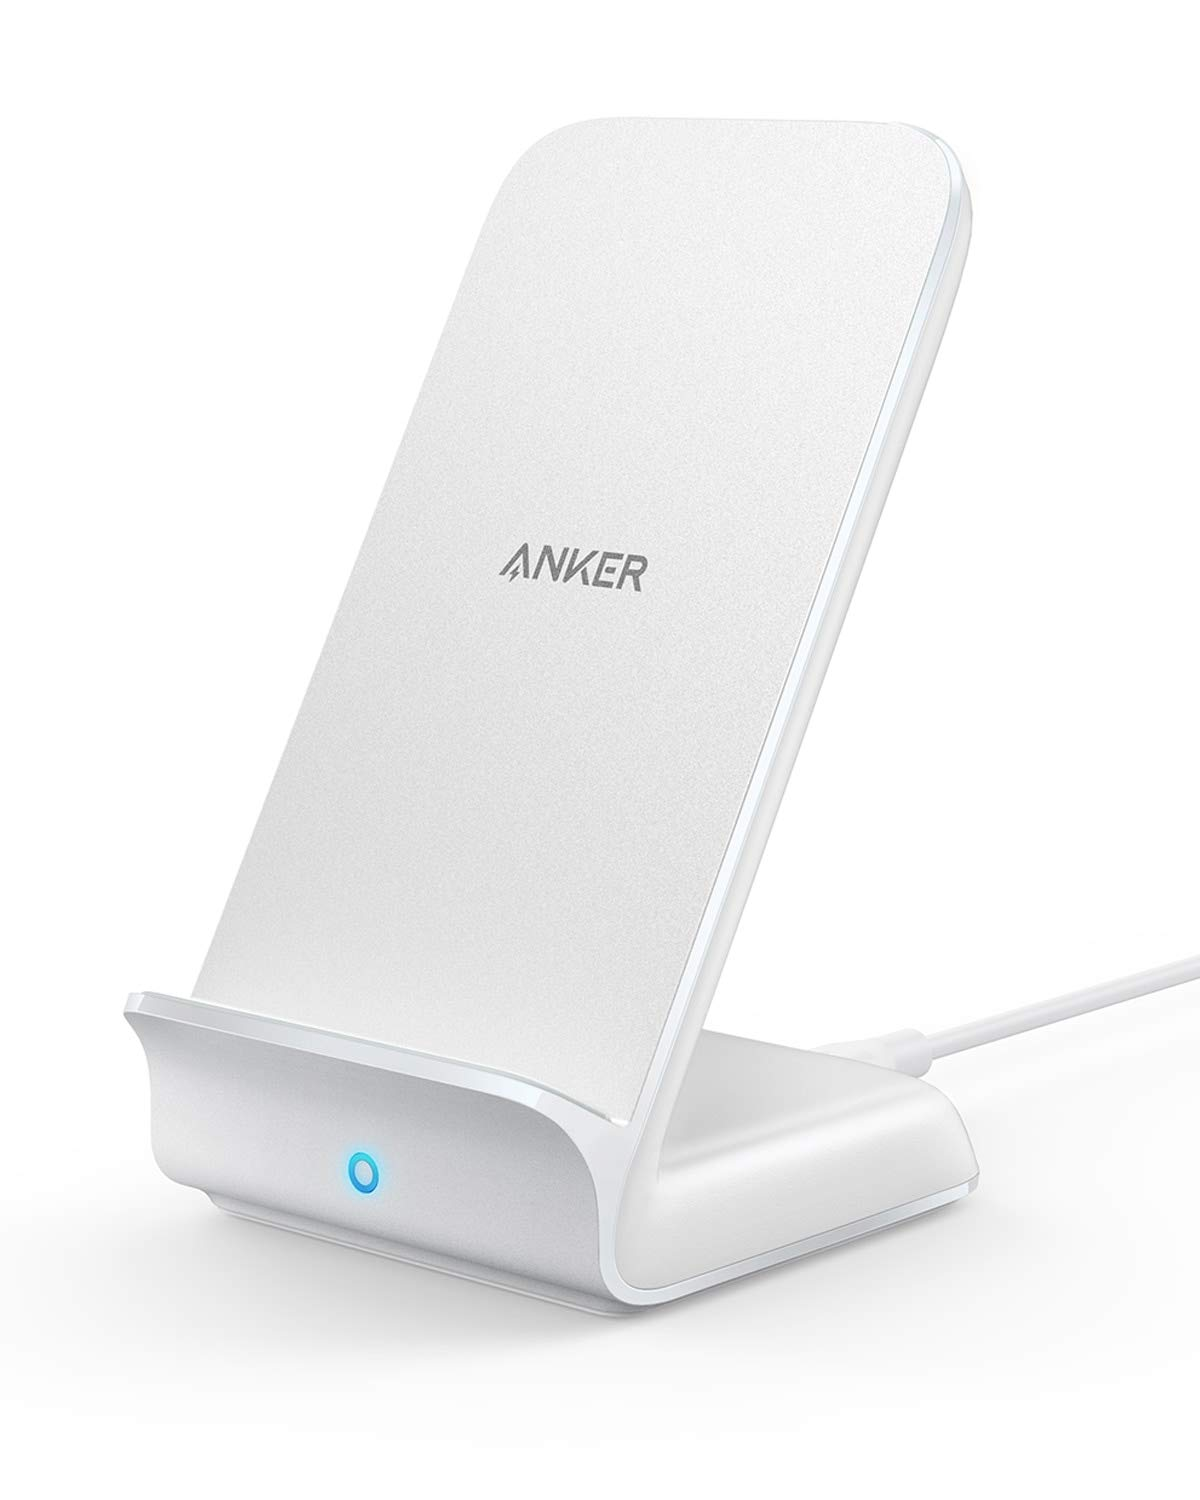 Anker PowerWave Fast Wireless Charger Stand, Qi-Certified, 7.5W for iPhone XR XS Max XS X 8/8 Plus, 10W for Galaxy S10 S9 S8, Note 10 Note 9, and 5W for All Qi-Enabled Phones (No AC Adapter) - White